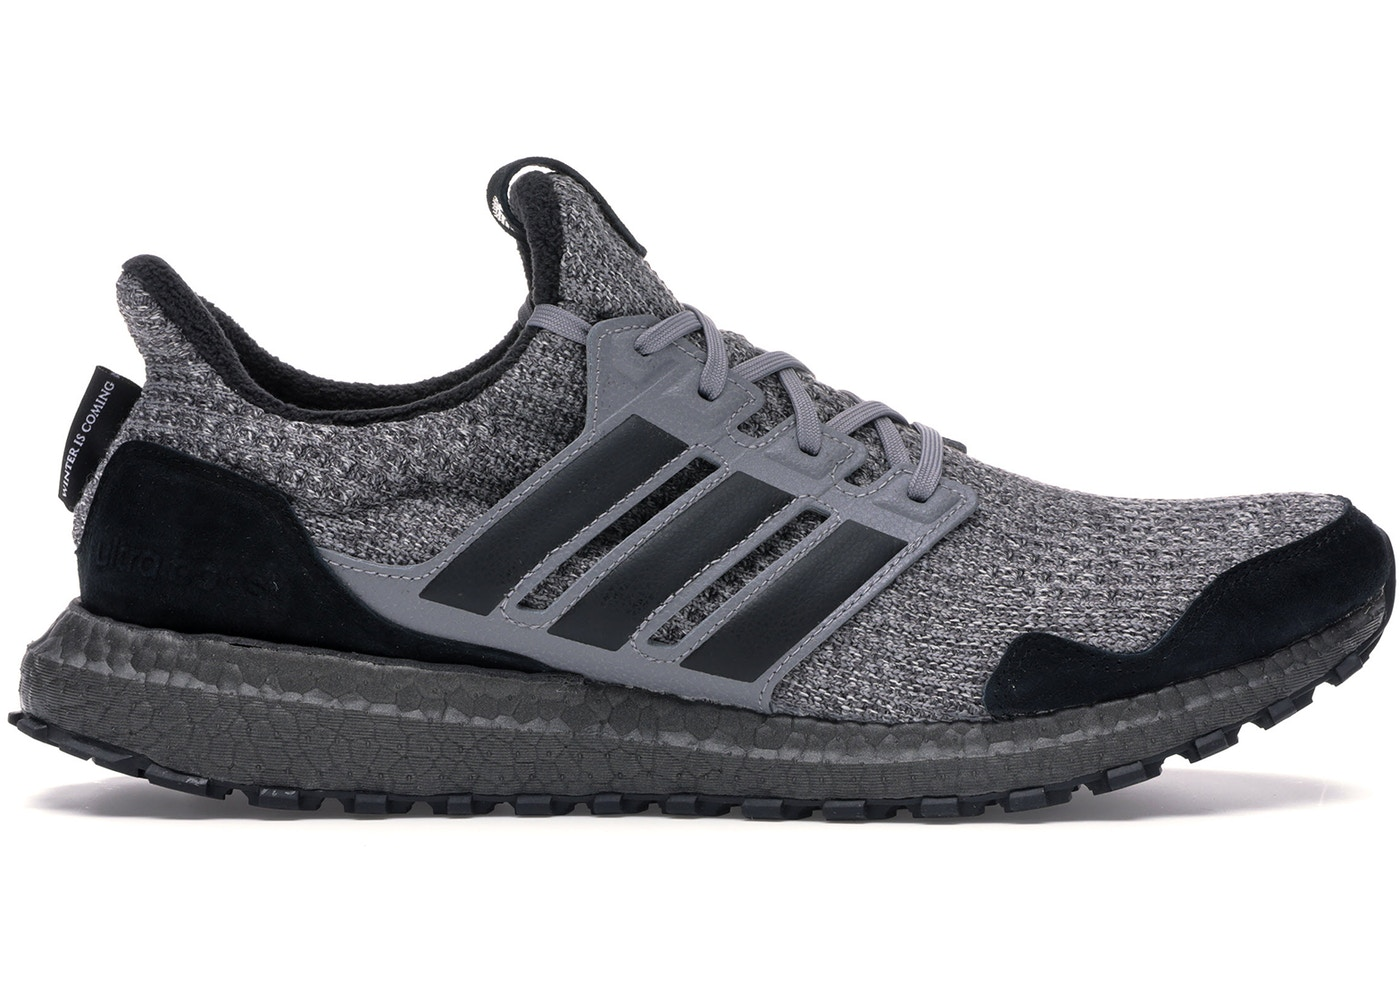 Circunferencia Crudo ligado  adidas Ultra Boost 4.0 Game of Thrones House Stark - EE3706